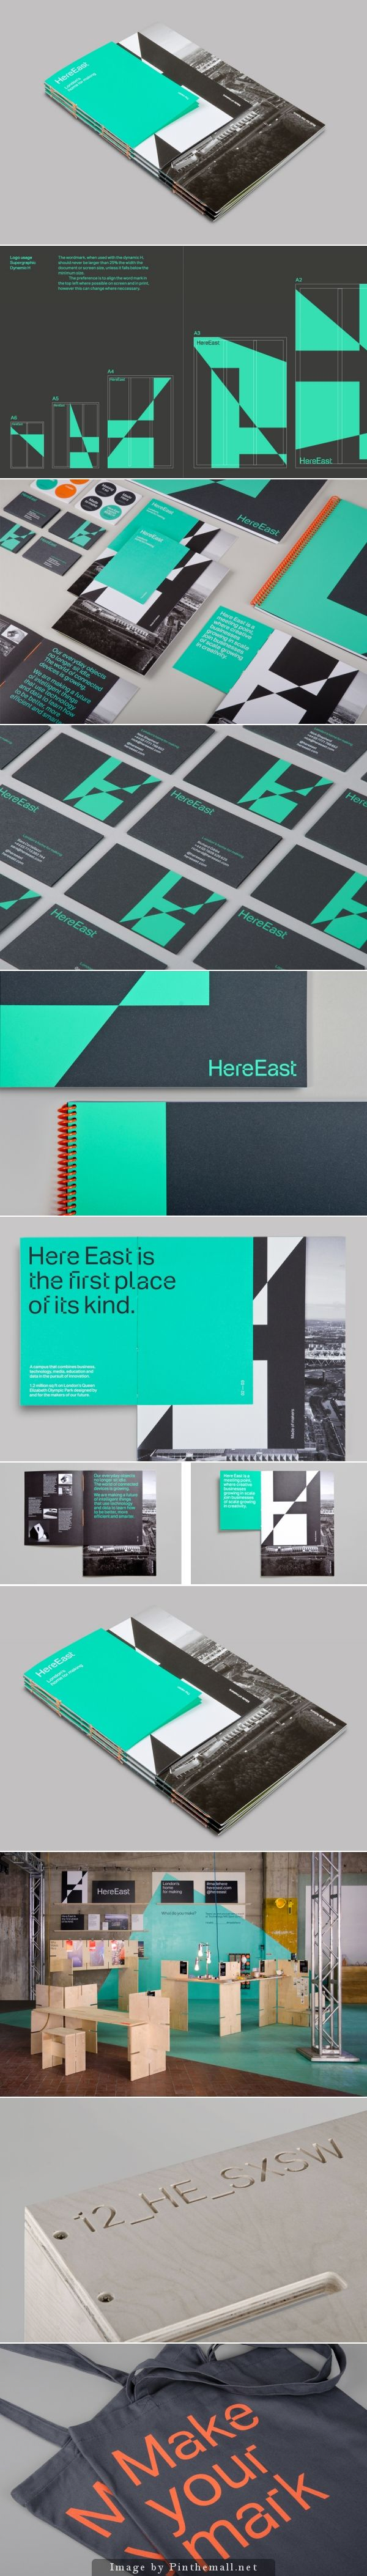 Here East designed by dn&co